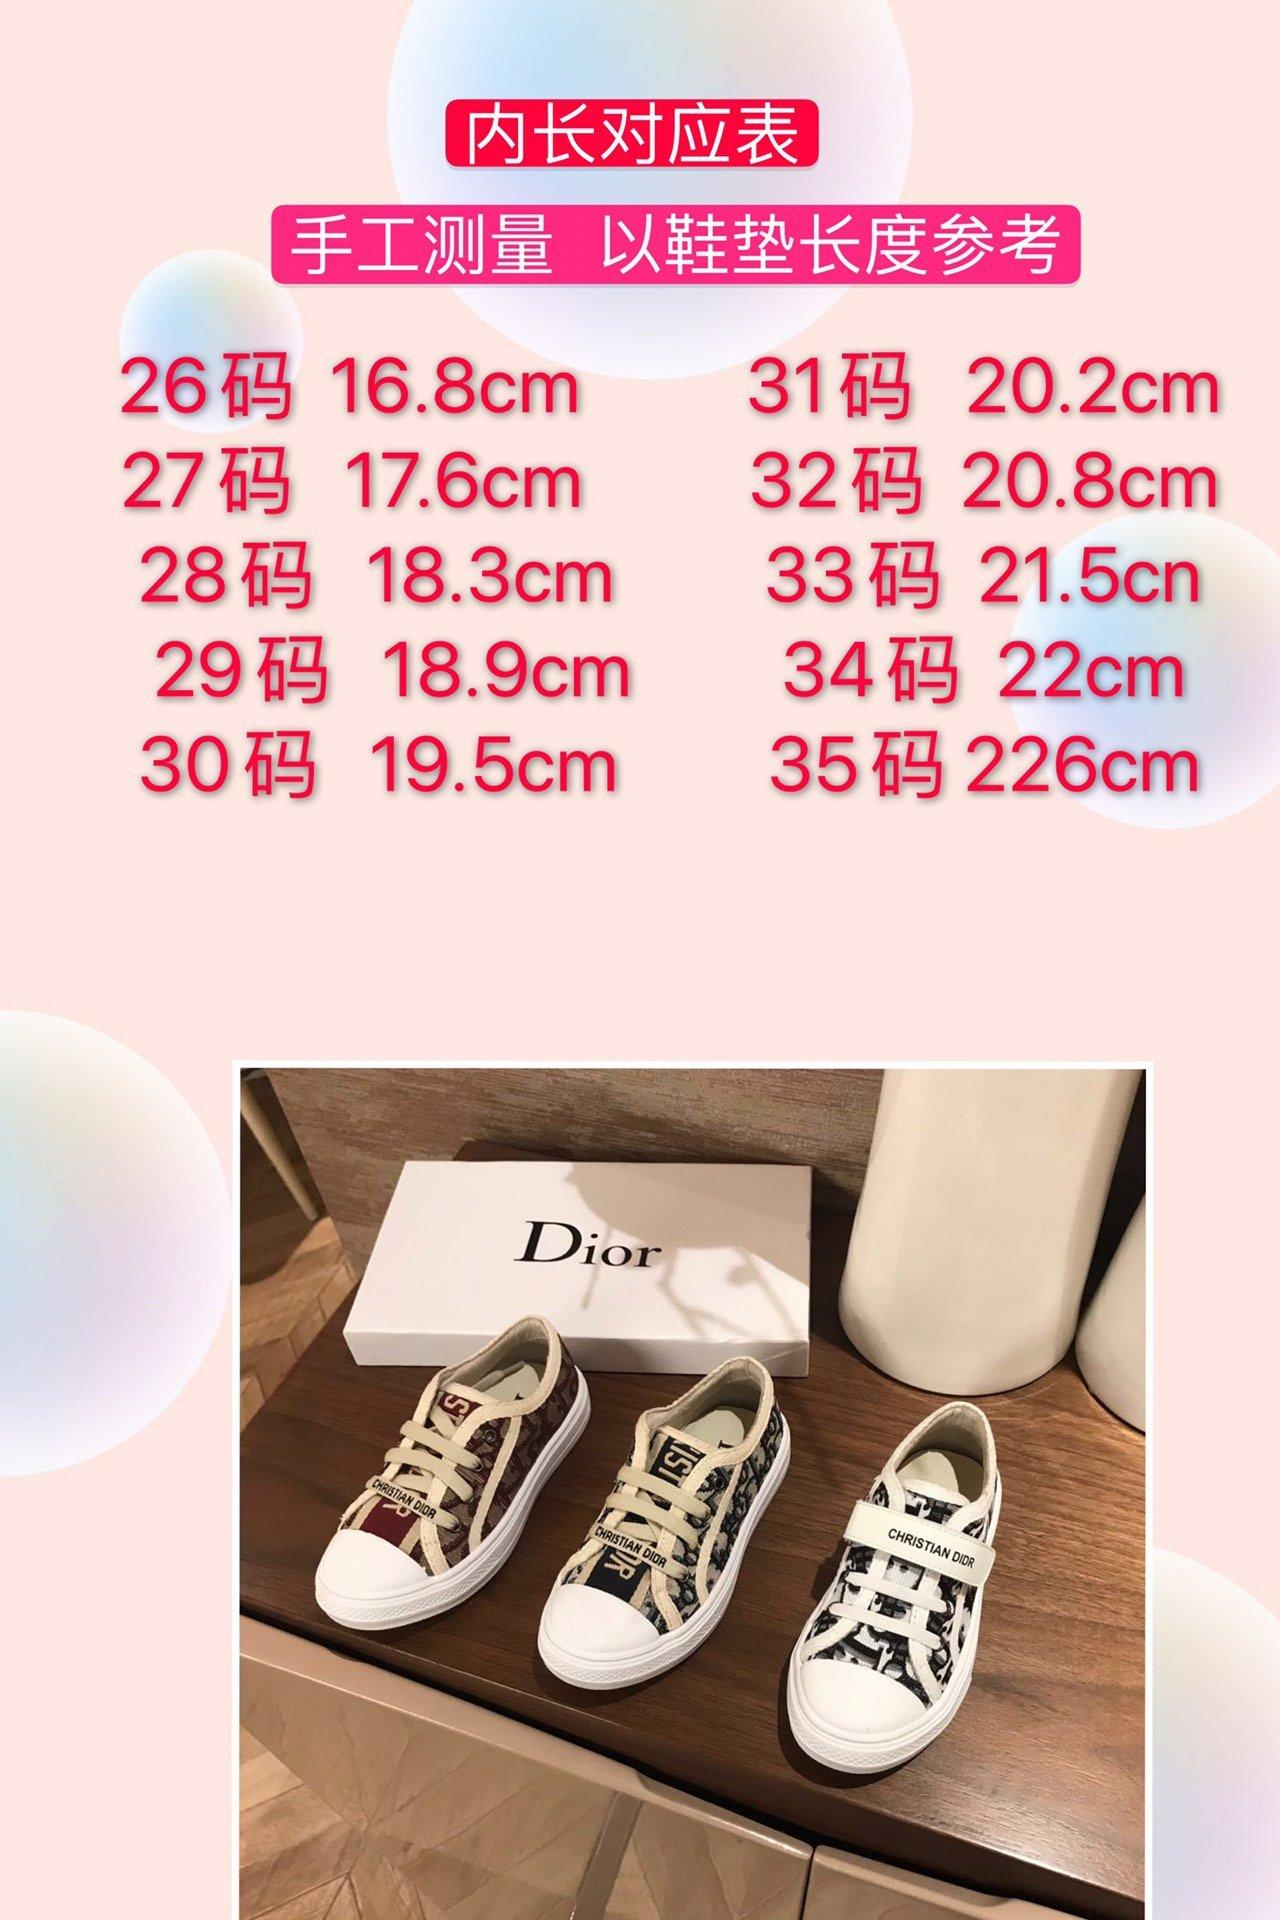 dior dior kids shoes, Find Quality kids shoes and Buy kids shoes